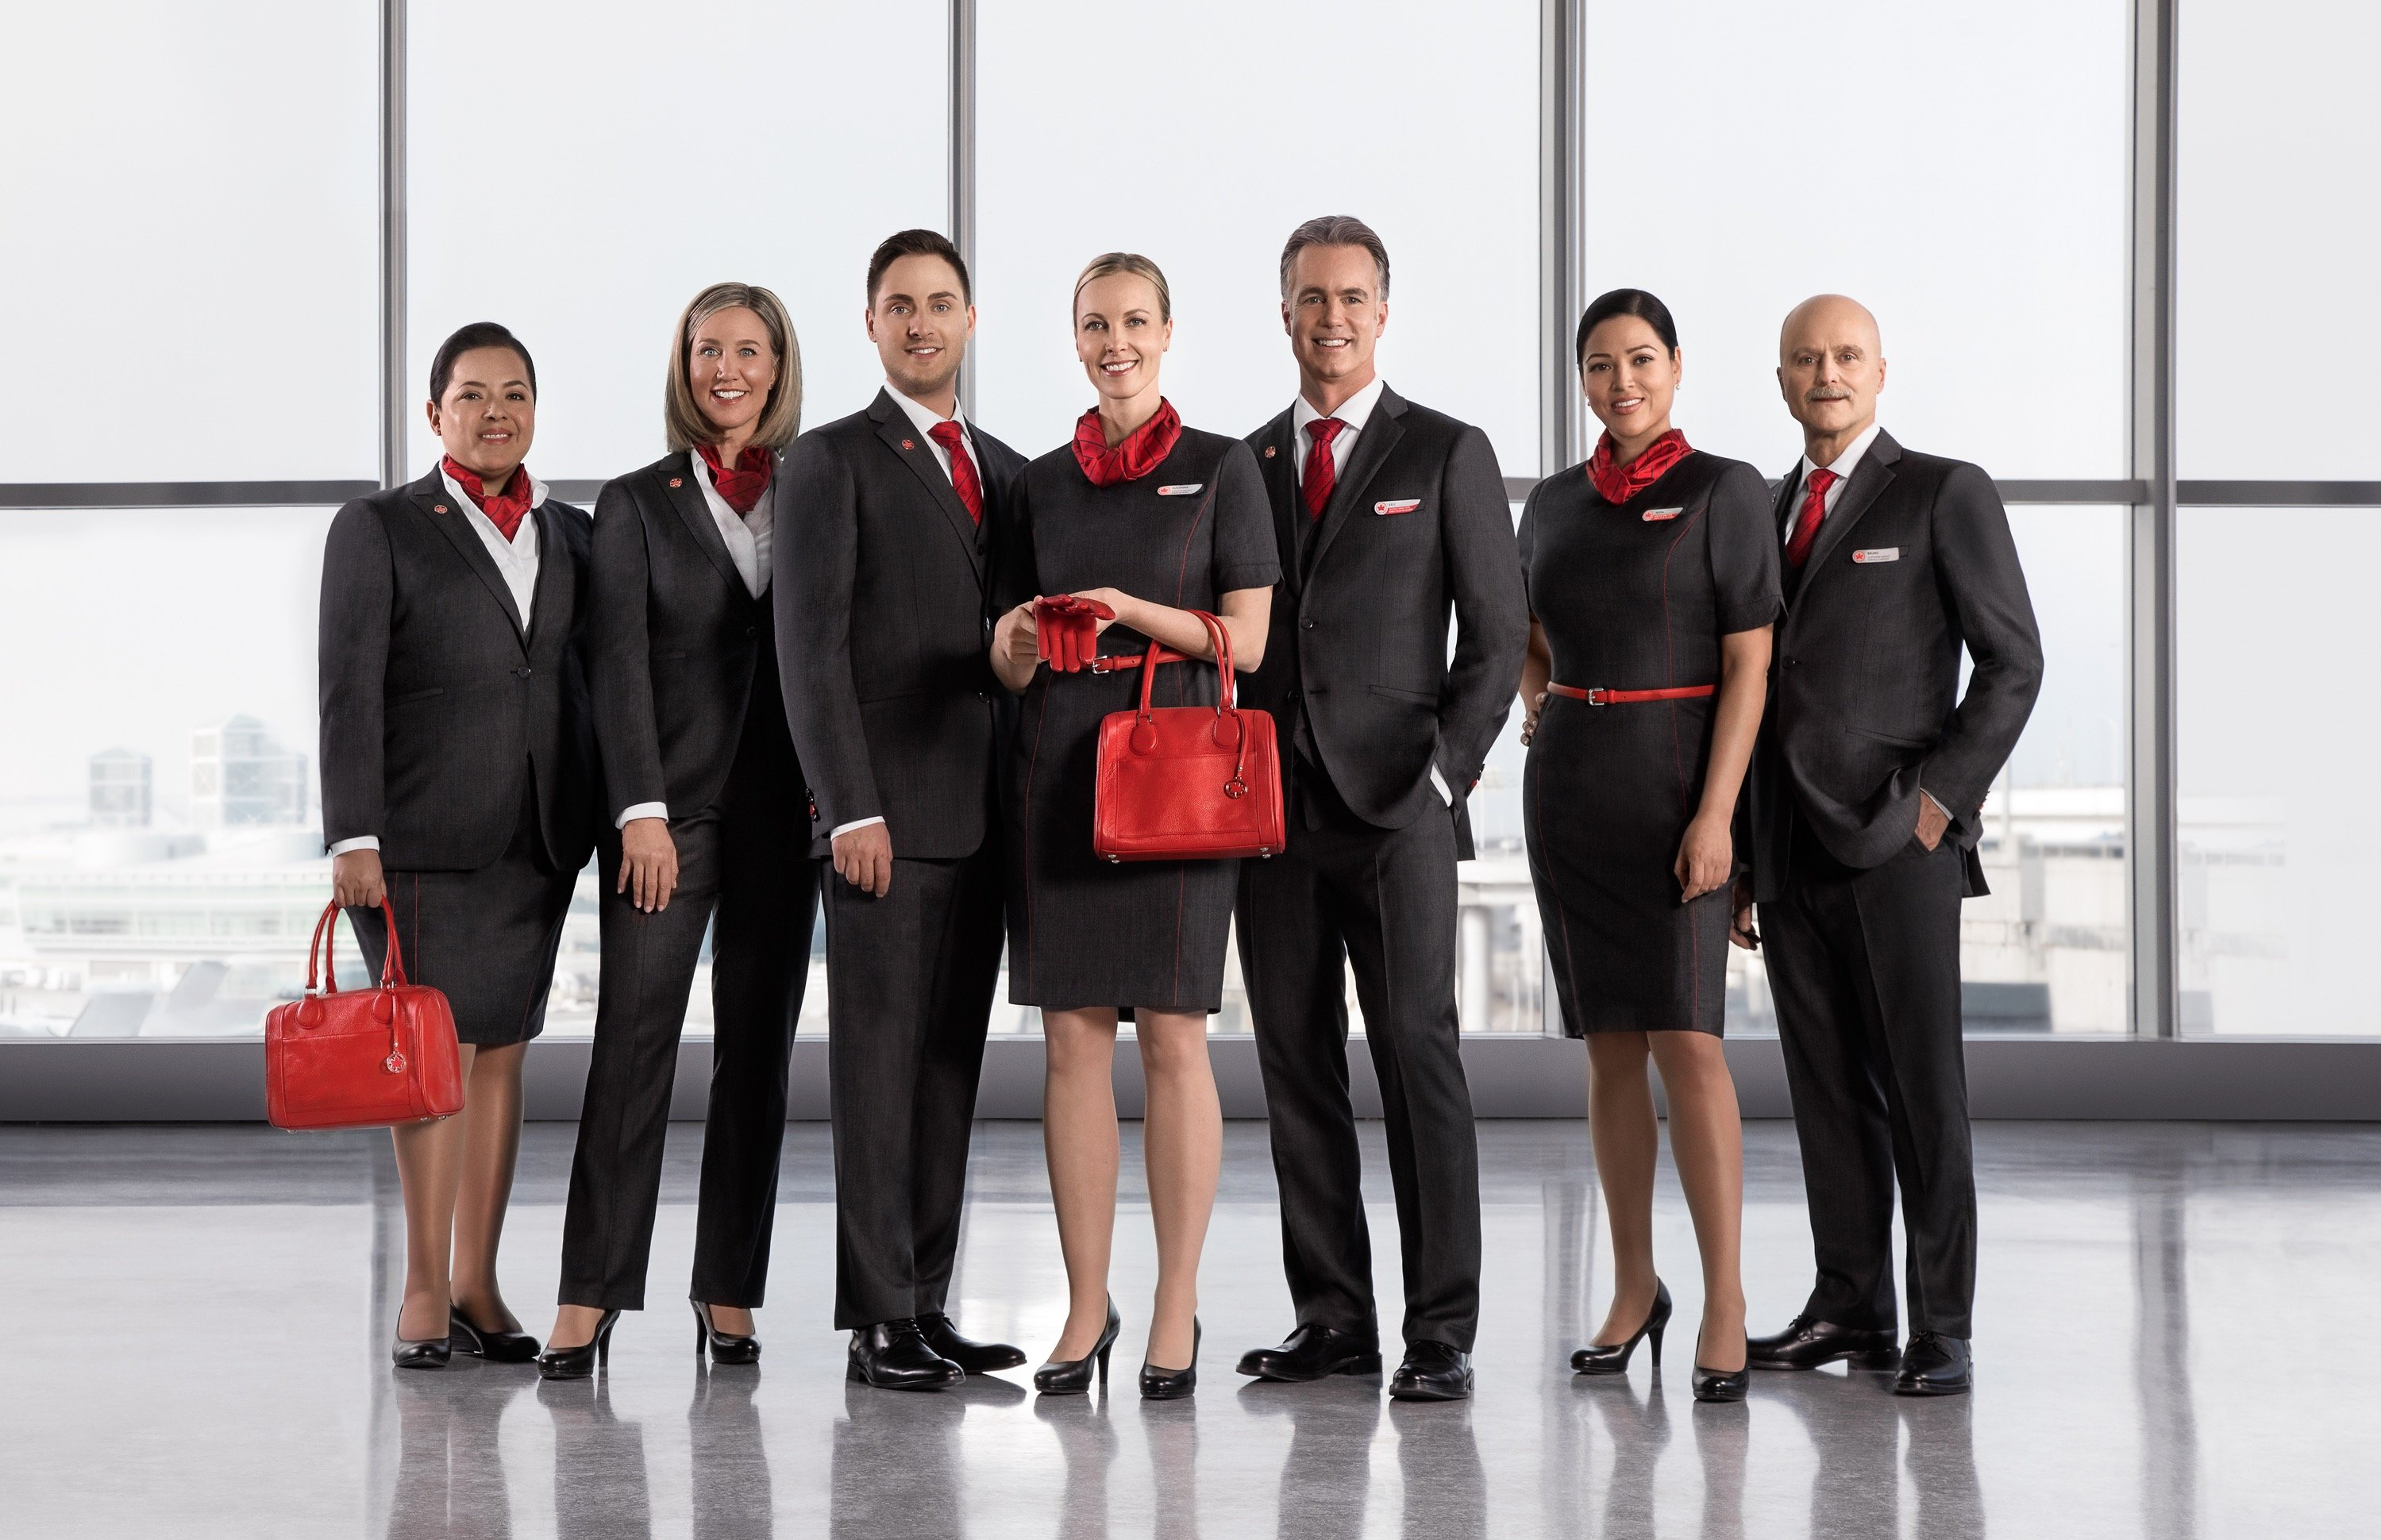 air canada reveals new uniforms fully tested by staff over